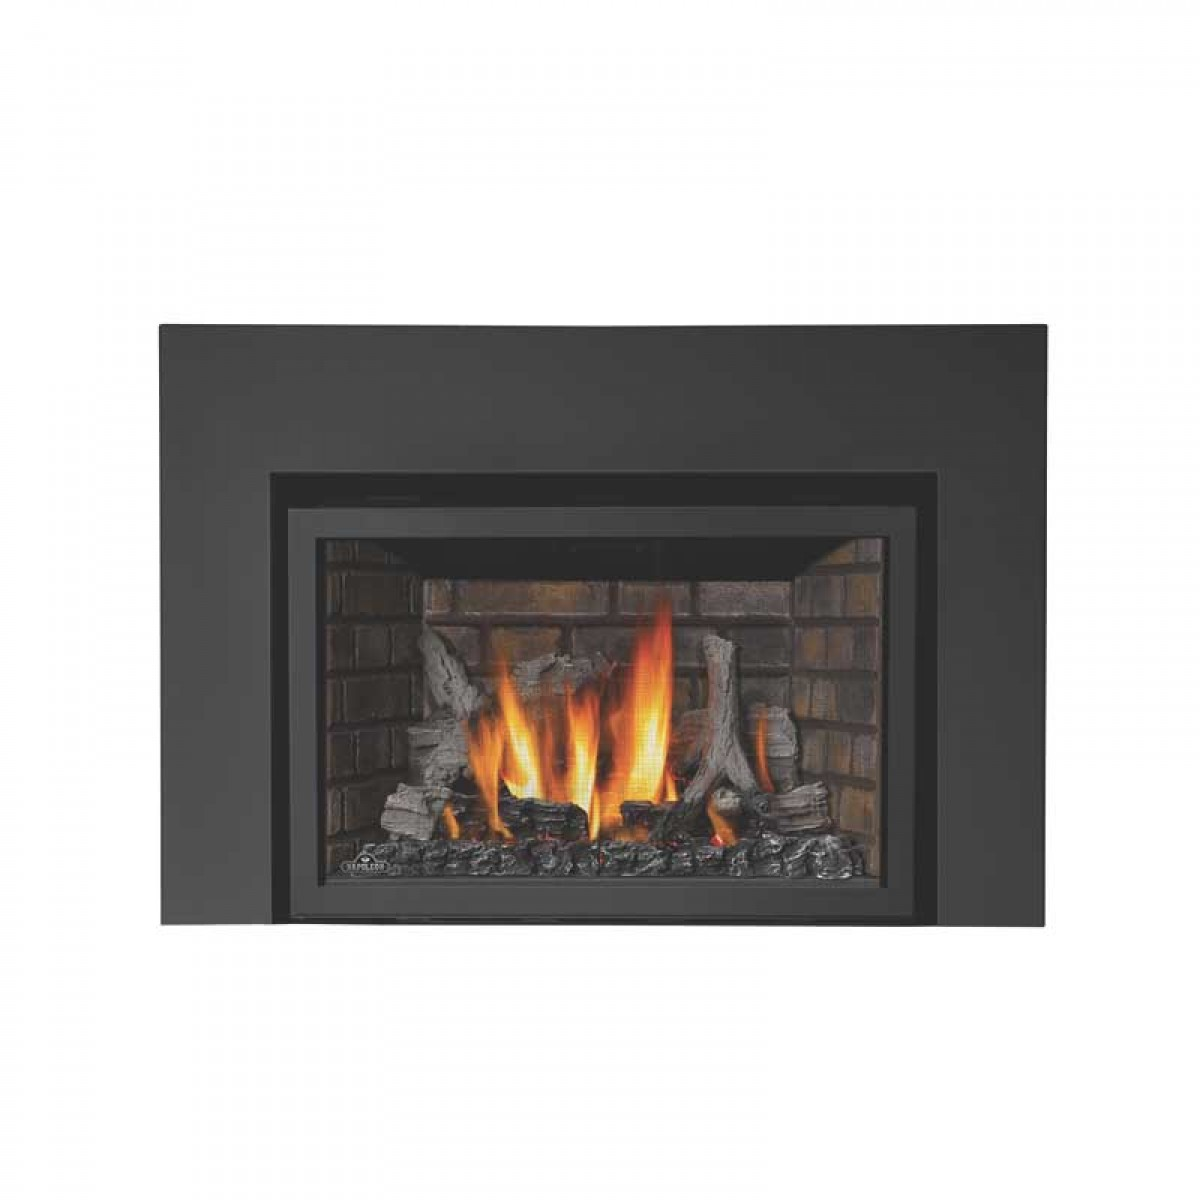 Napoleon IR3N-1SB Basic fireplace insert at iBuyFireplaces